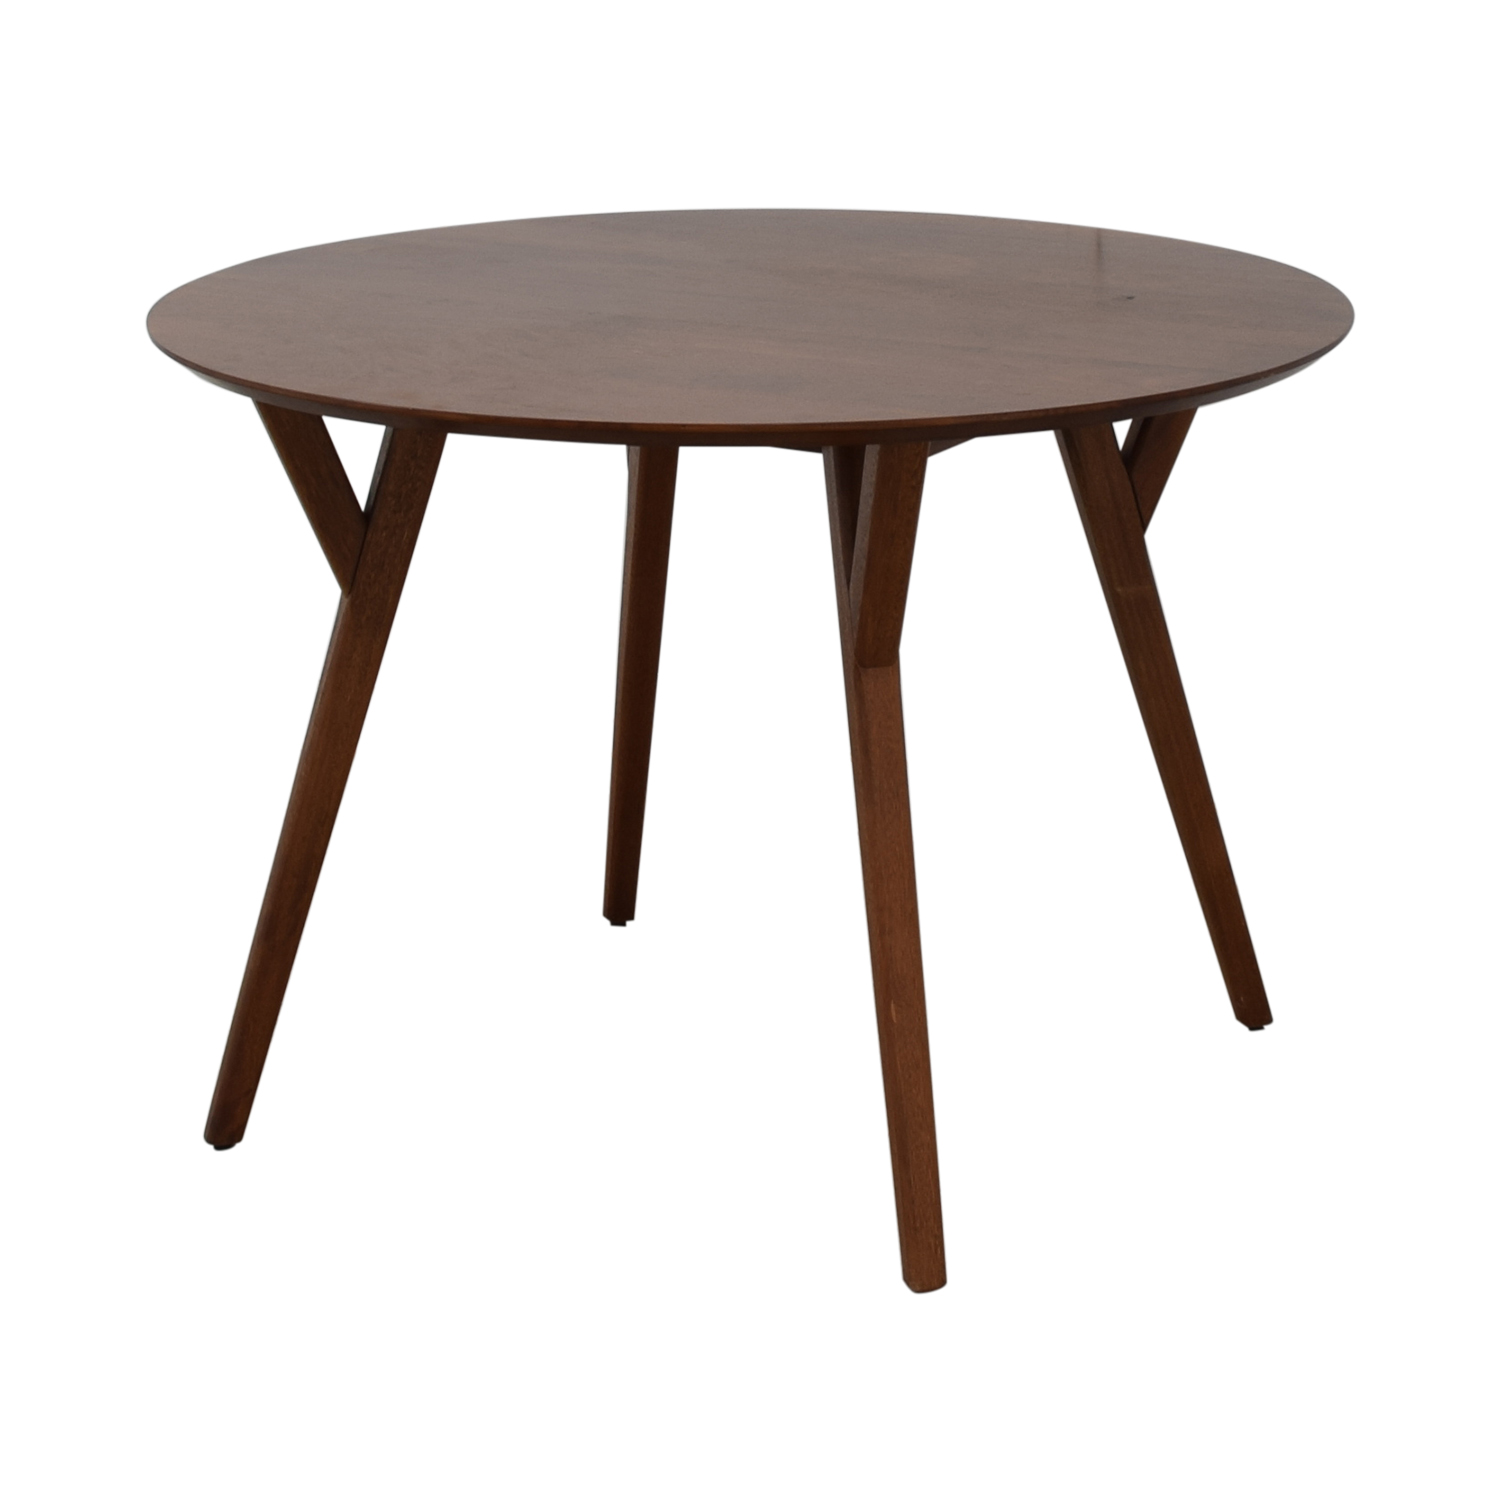 West Elm Dining Room Table / Dinner Tables